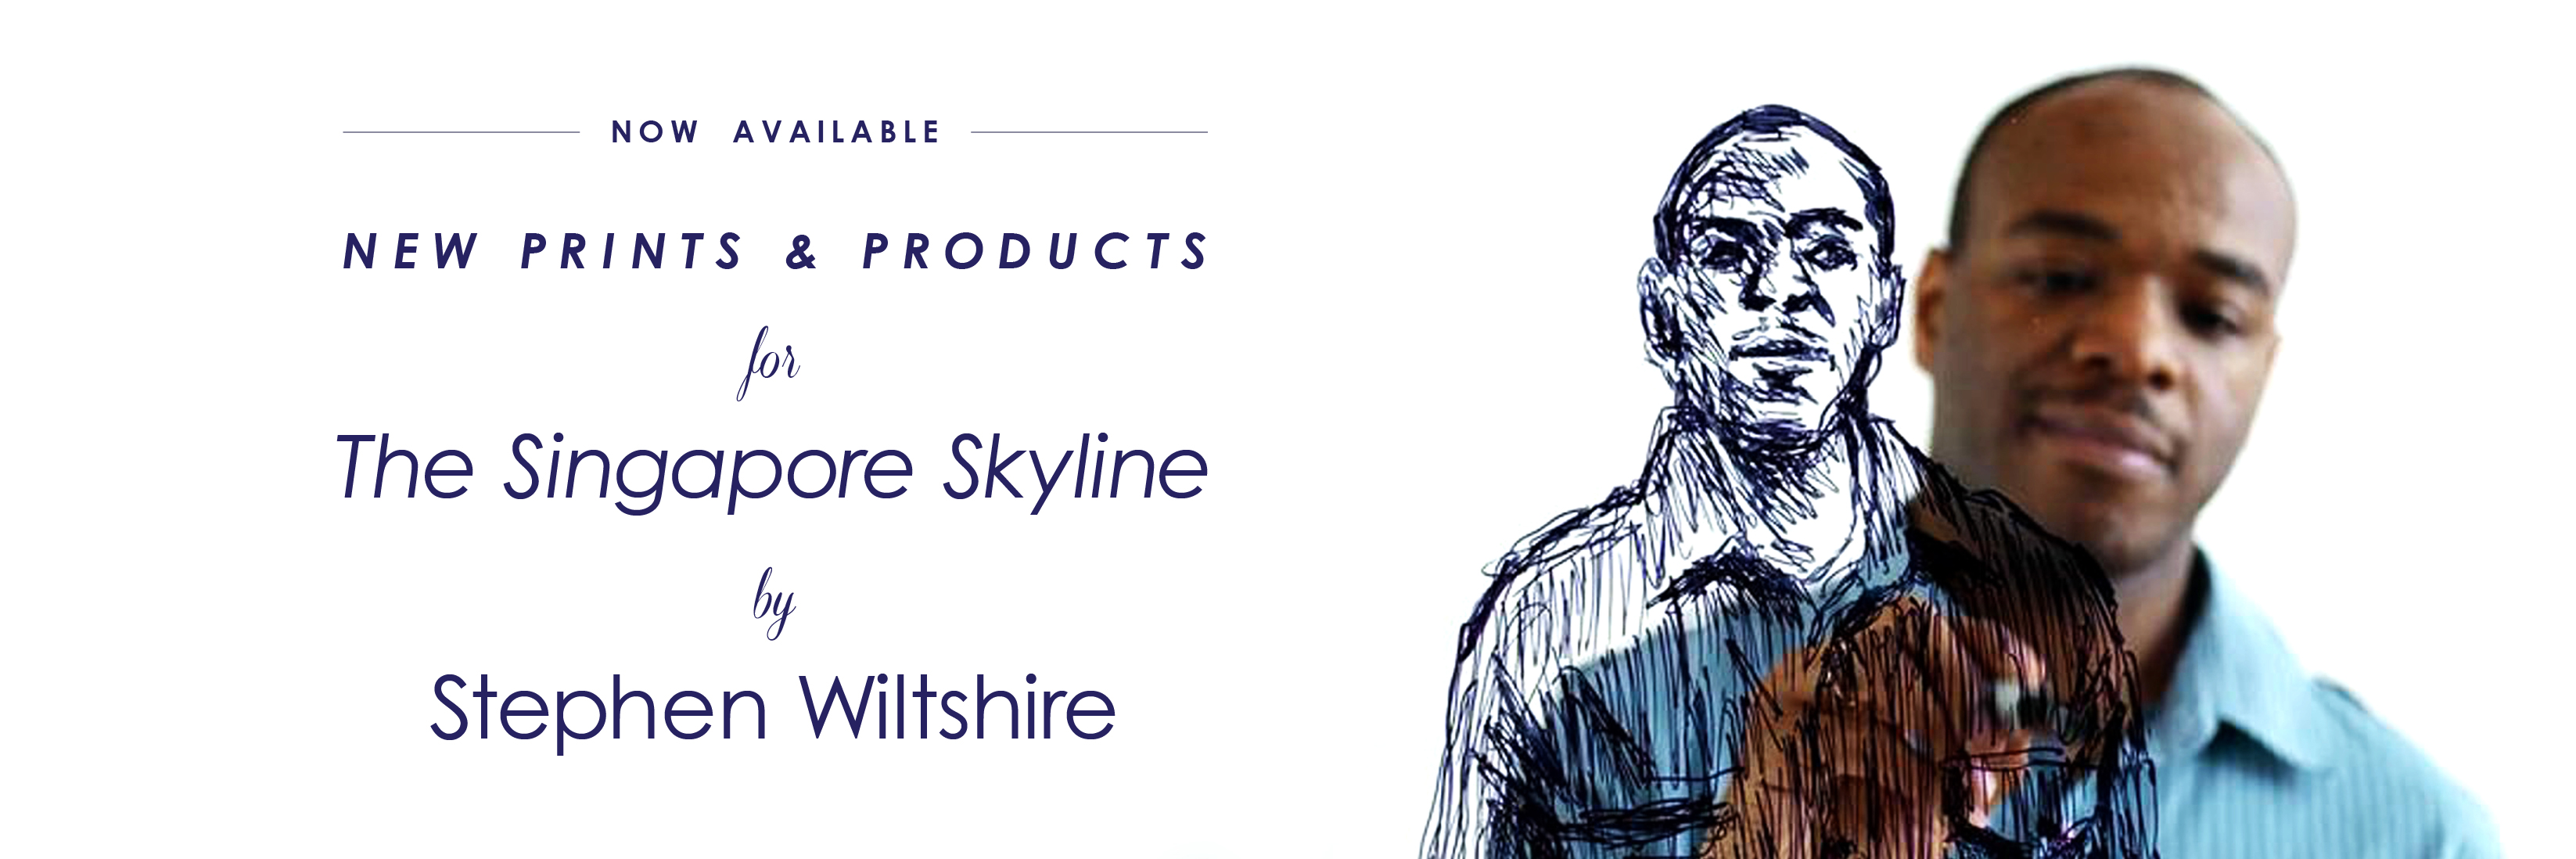 Stephen Wiltshire Products - Exclusive Pathlight Mall Merchandise